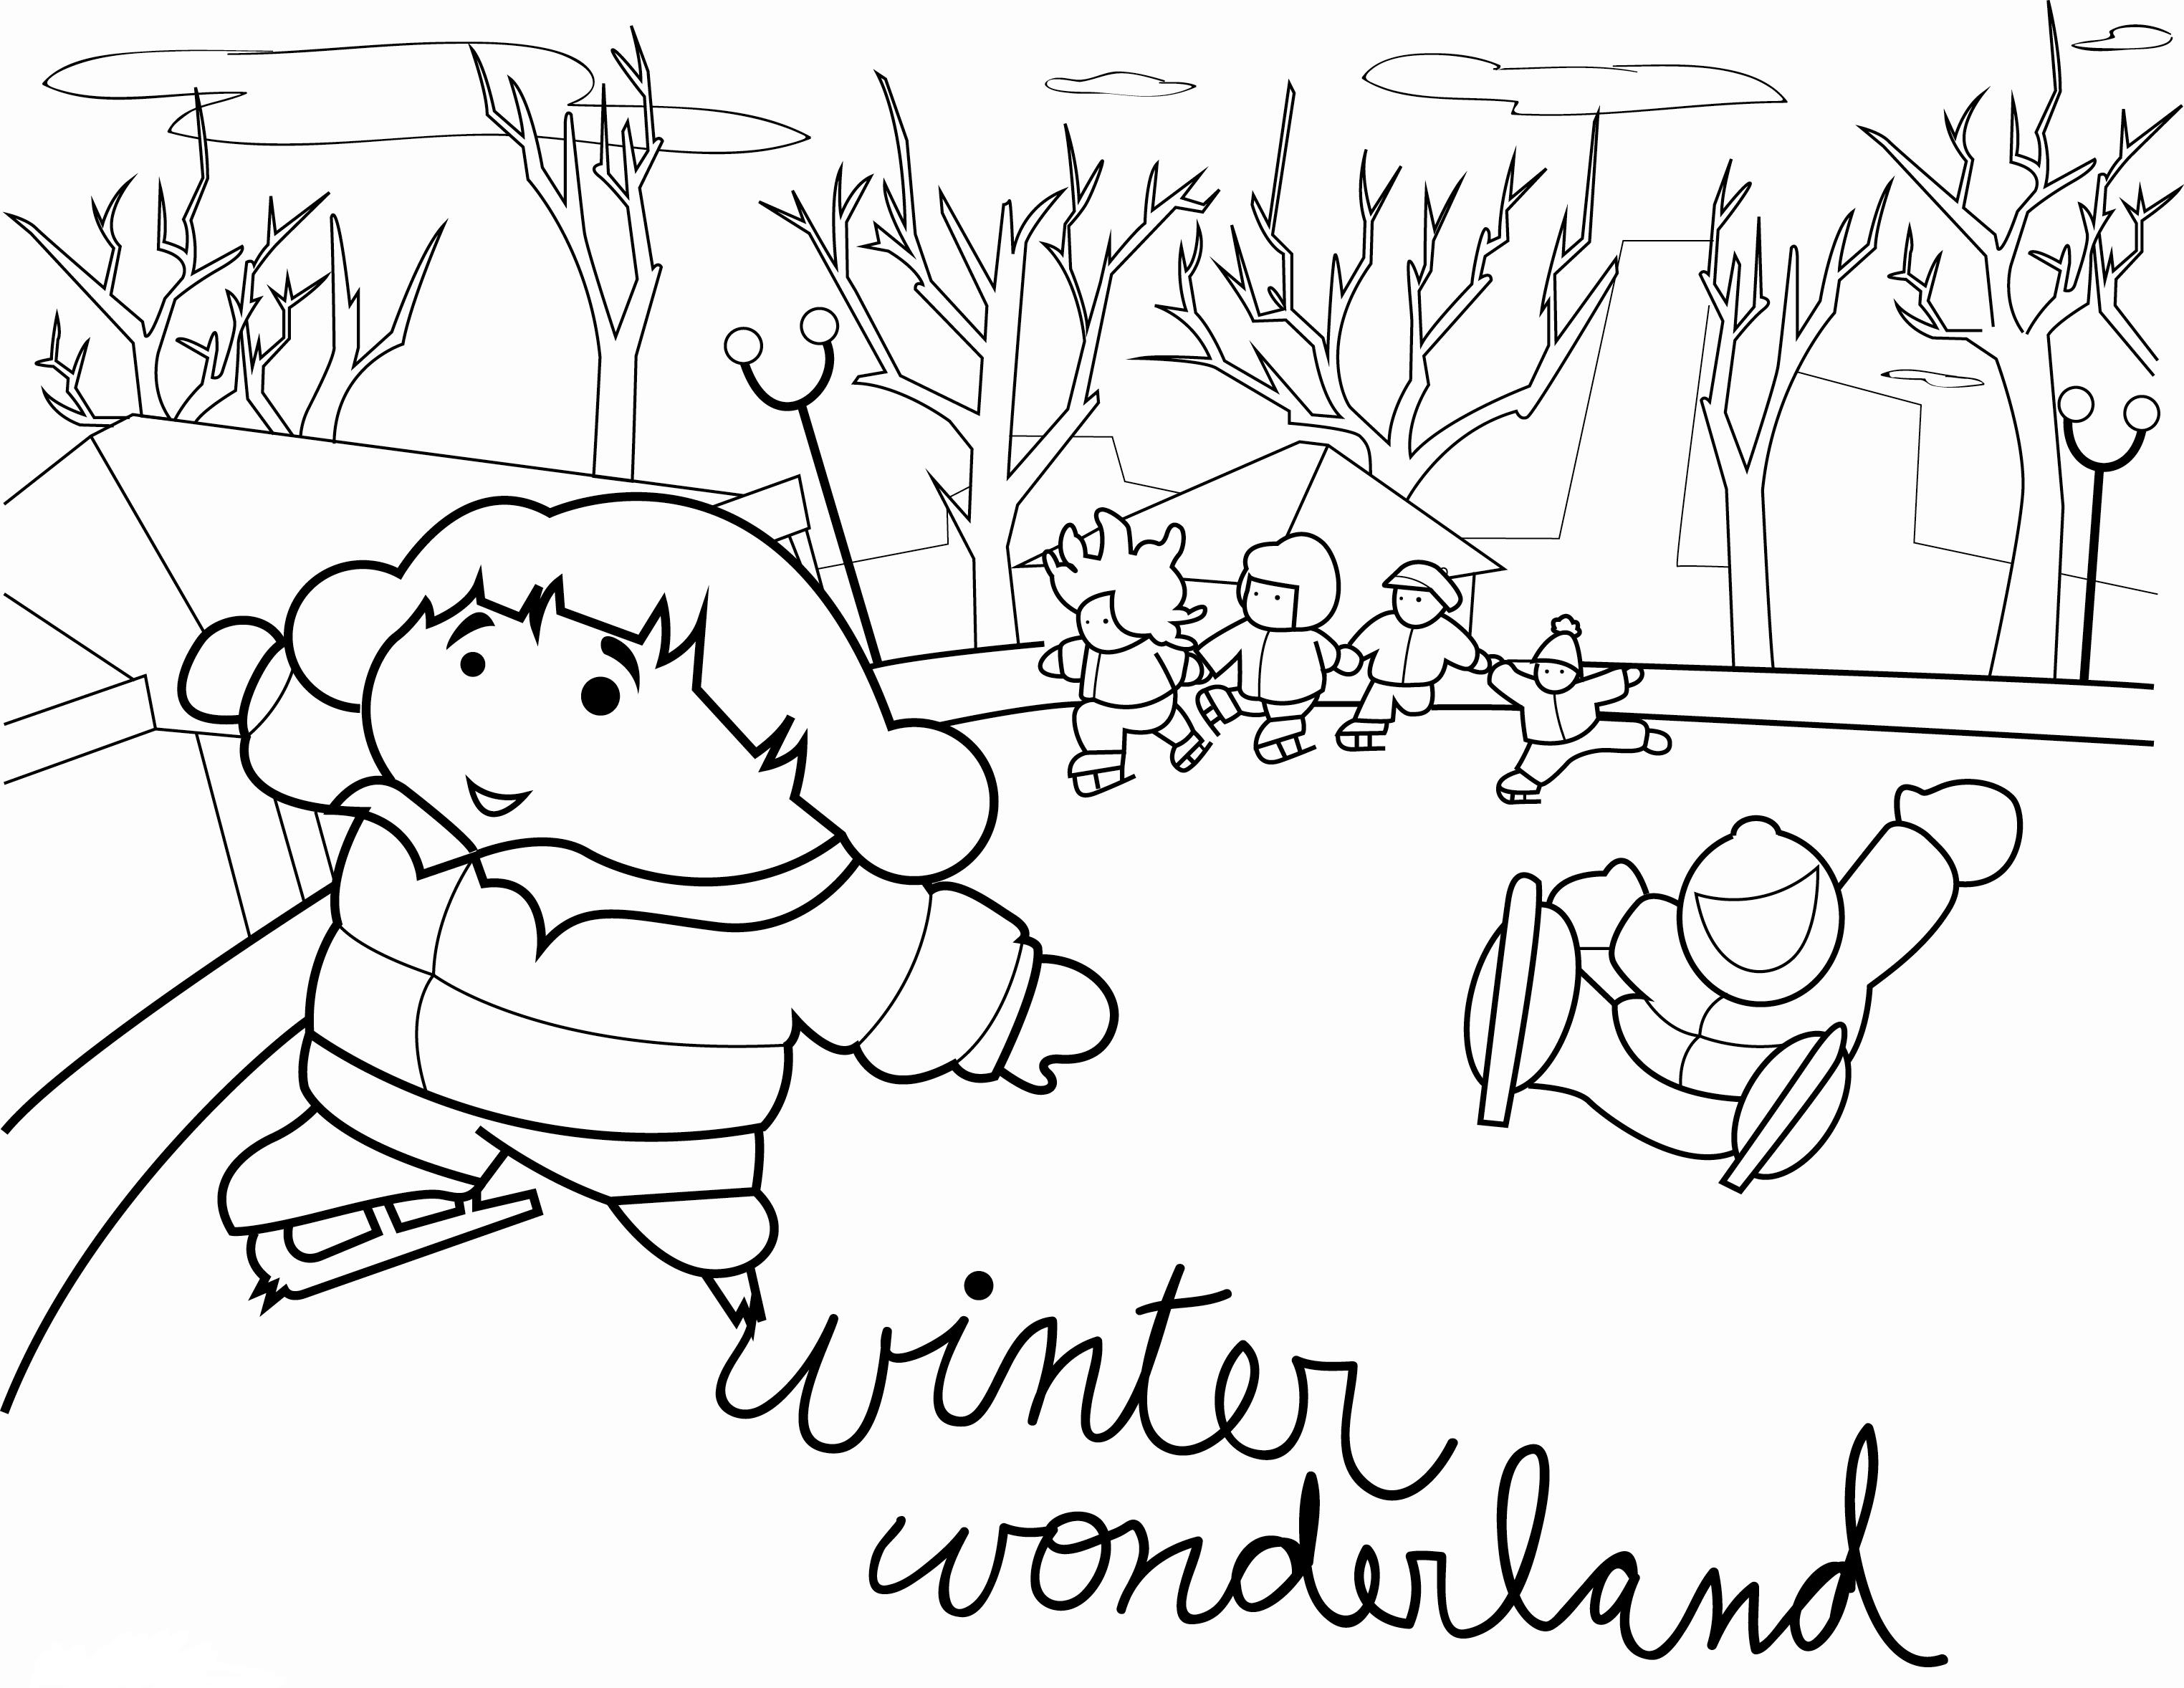 Winter Coloring Pages Printable Printable Winter Coloring Pages For Kids At Getdrawings Free